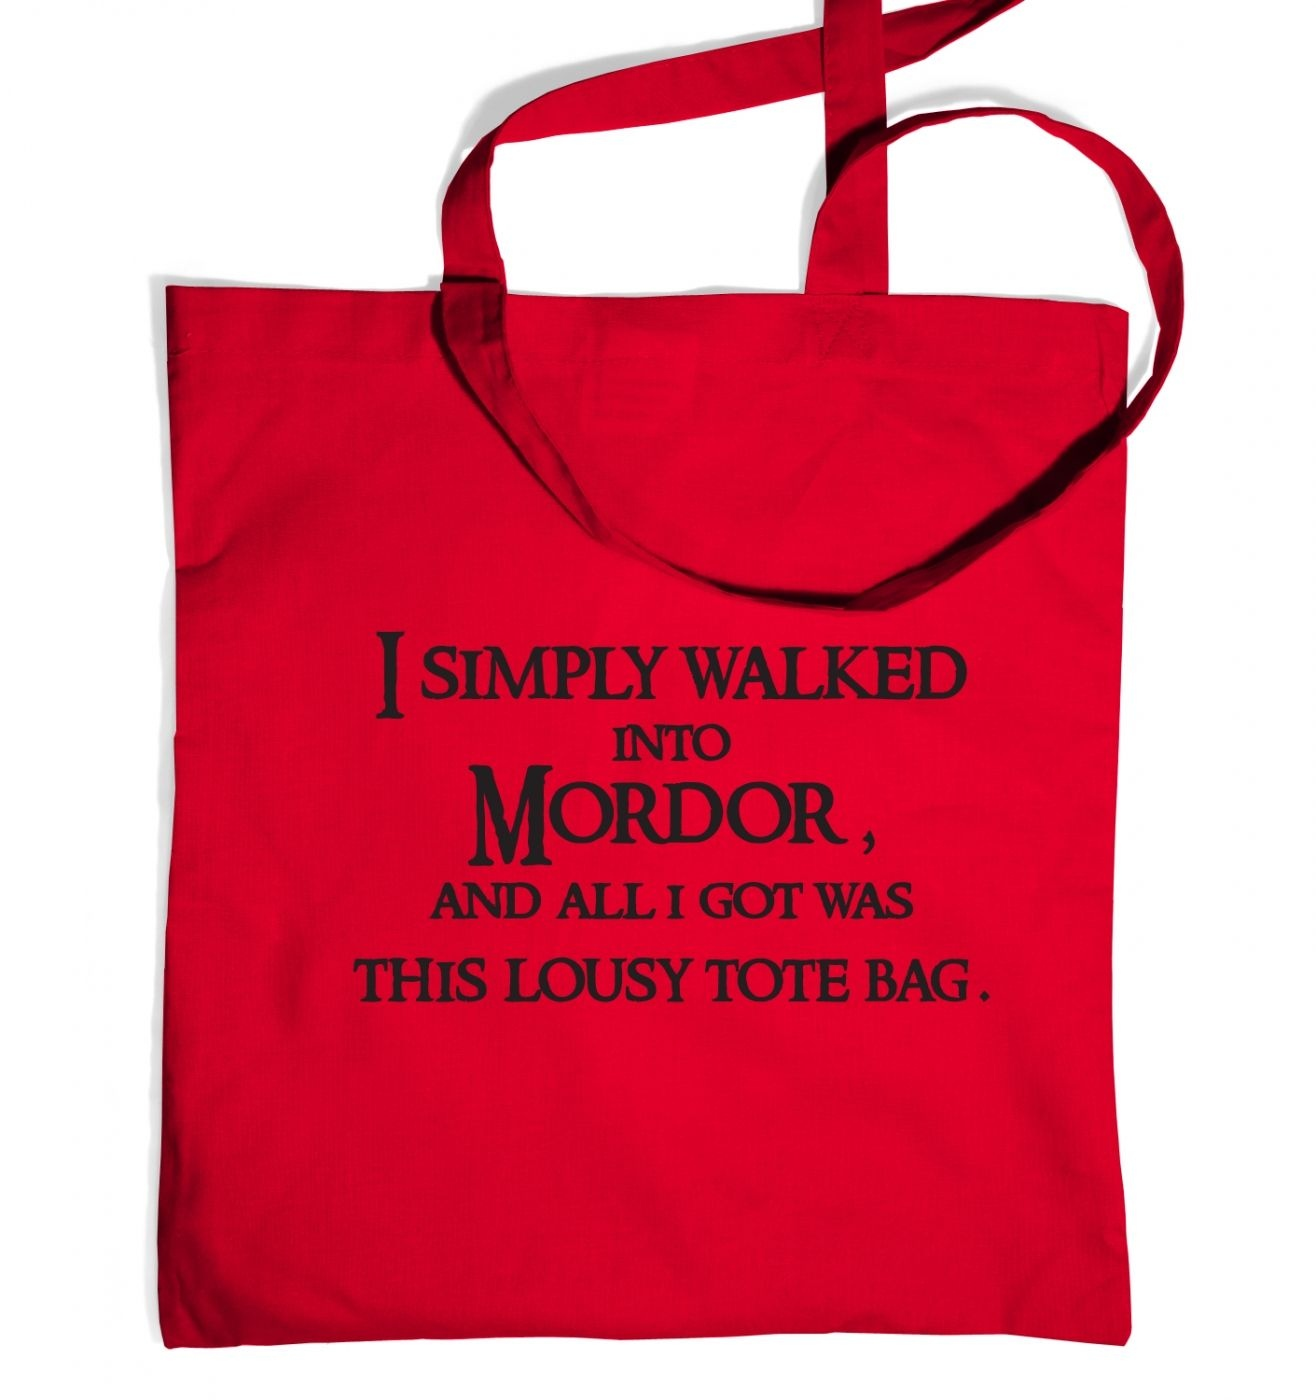 A Tote Bag From Mordor tote bag